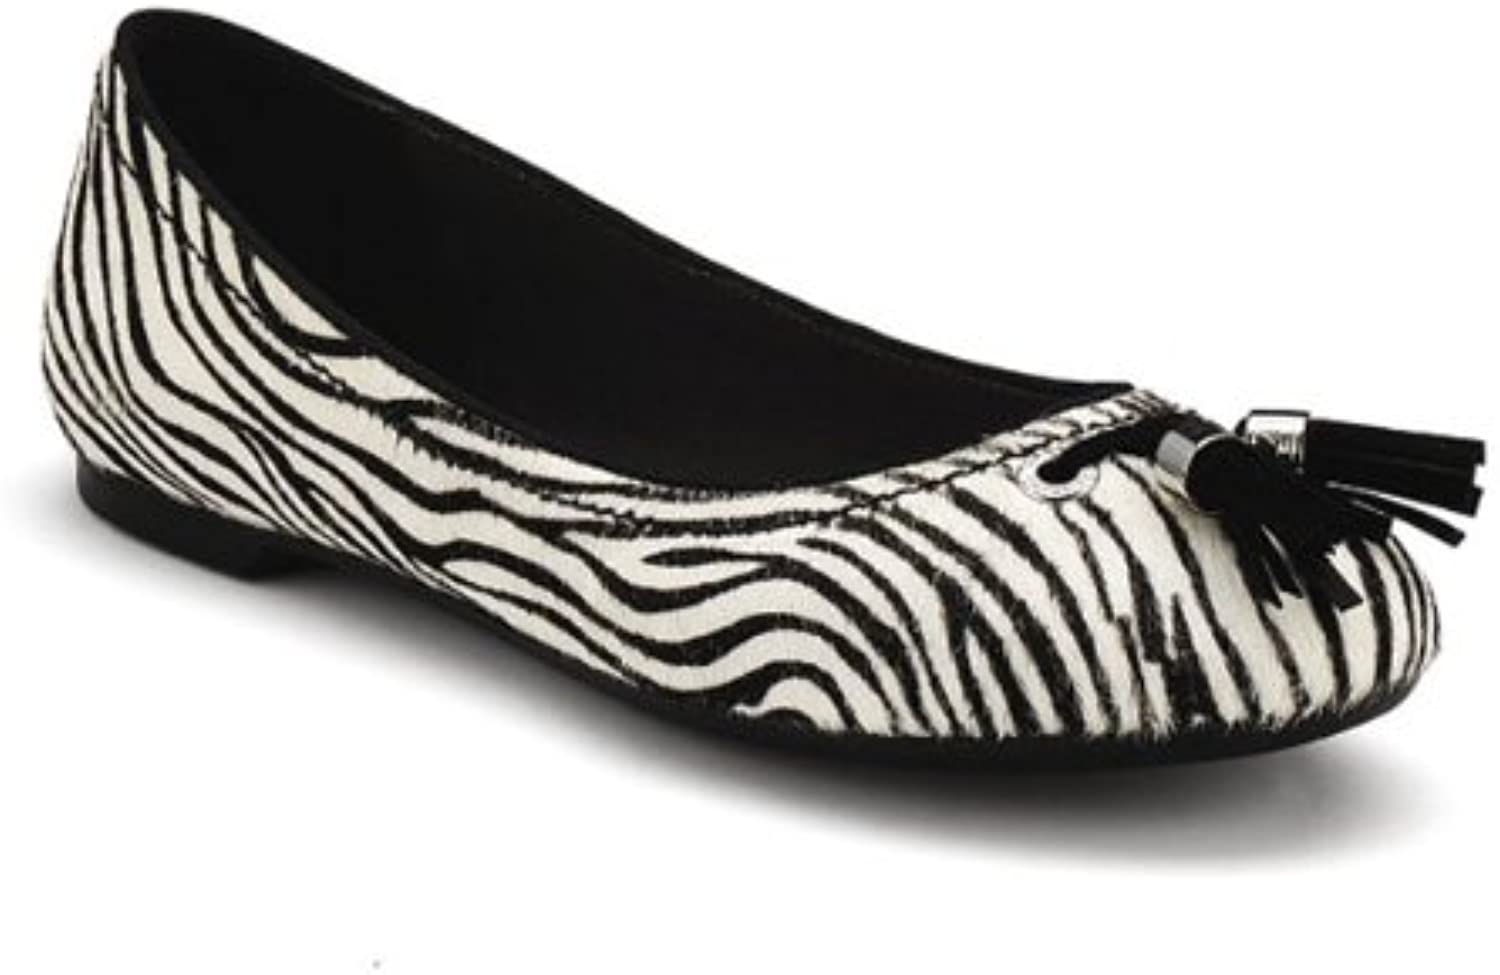 Sperry Womens Bliss, Black White Zebra Pony-6